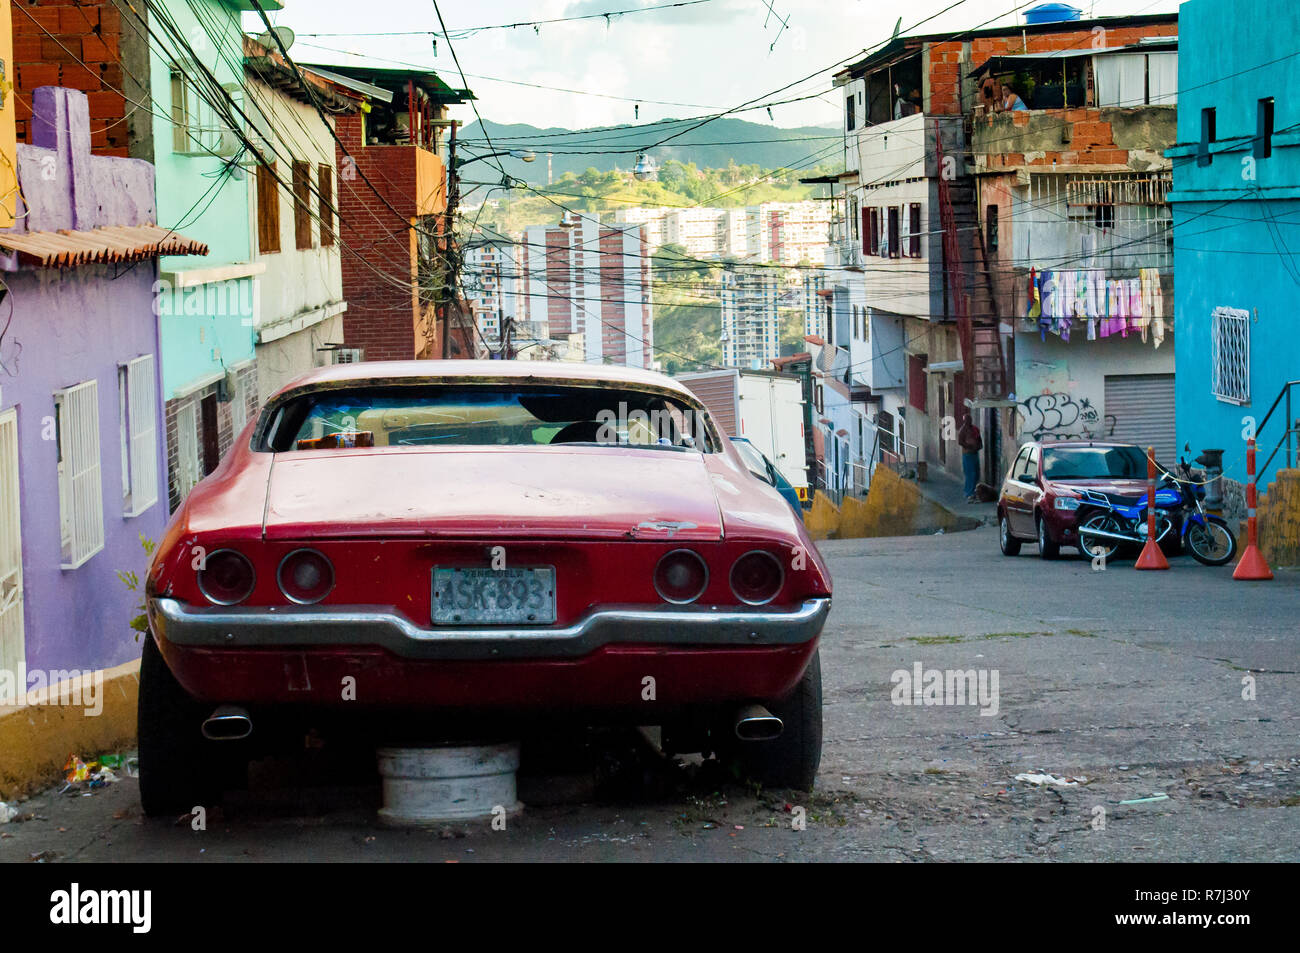 Caracas, Venezuela - 20 june 2018: old american car parked in poor city slum. The country is hit by a severe economic crisis and it's not possible to  - Stock Image